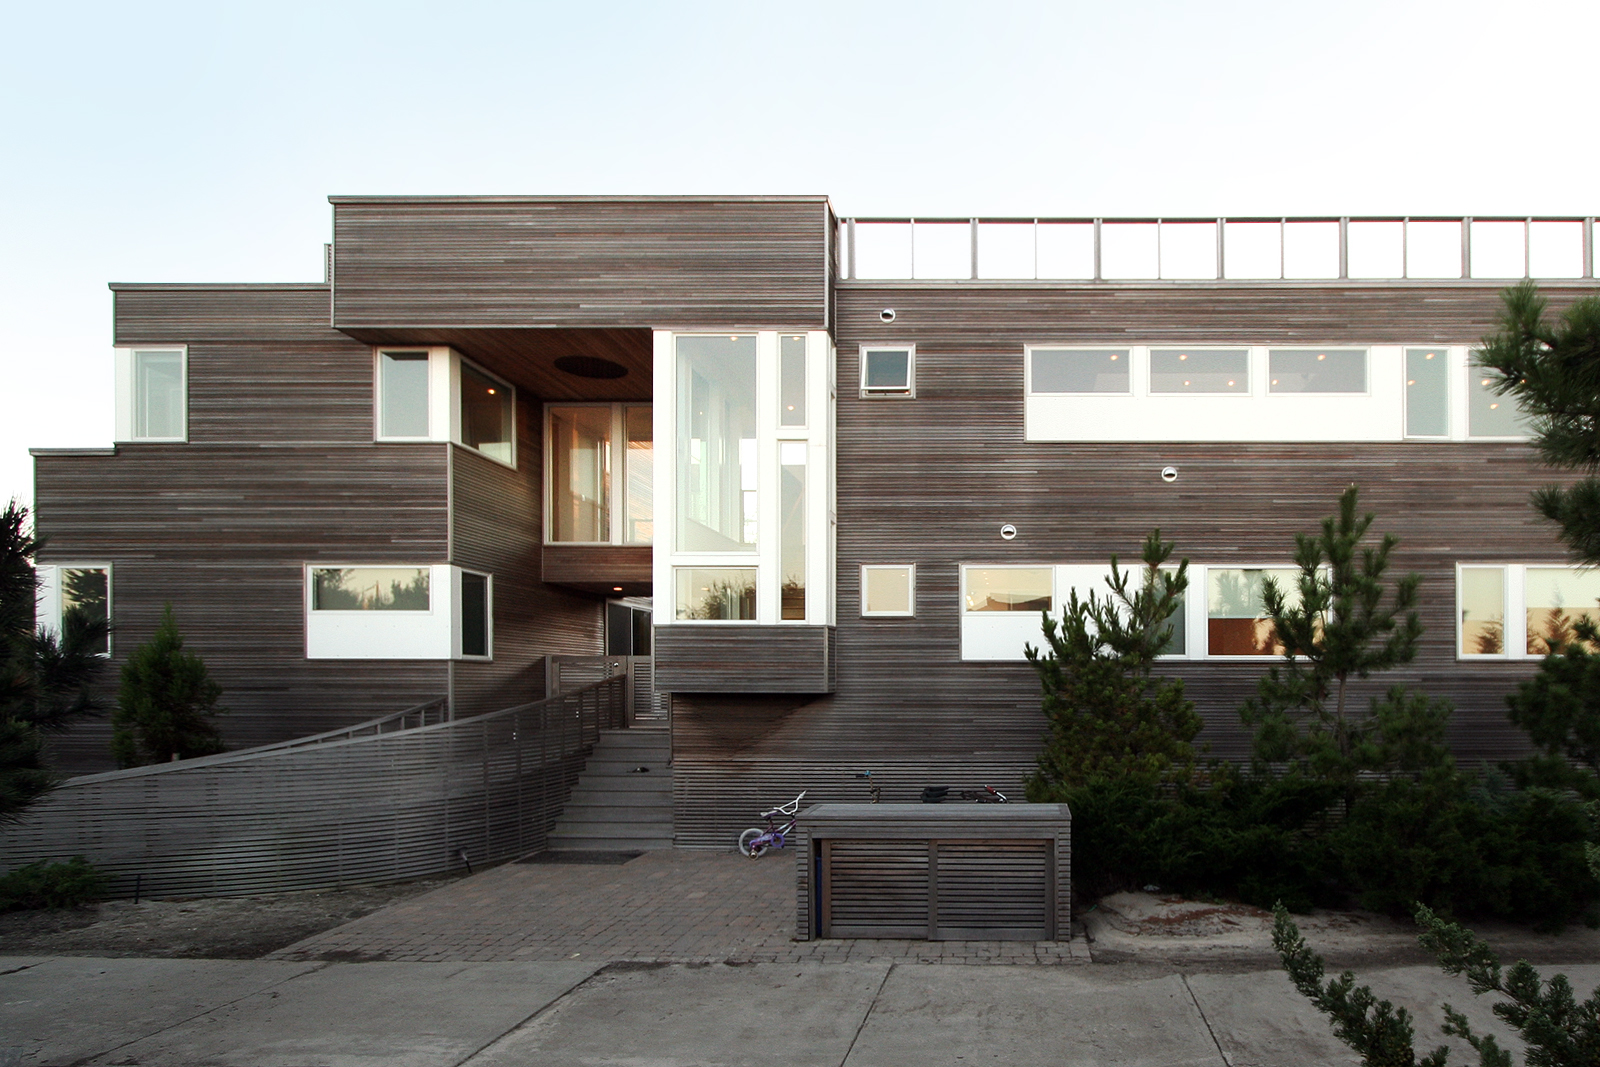 res4-resolution-4-architecture-modern-home-residential-house-on-fire-island-exterior-00.jpg